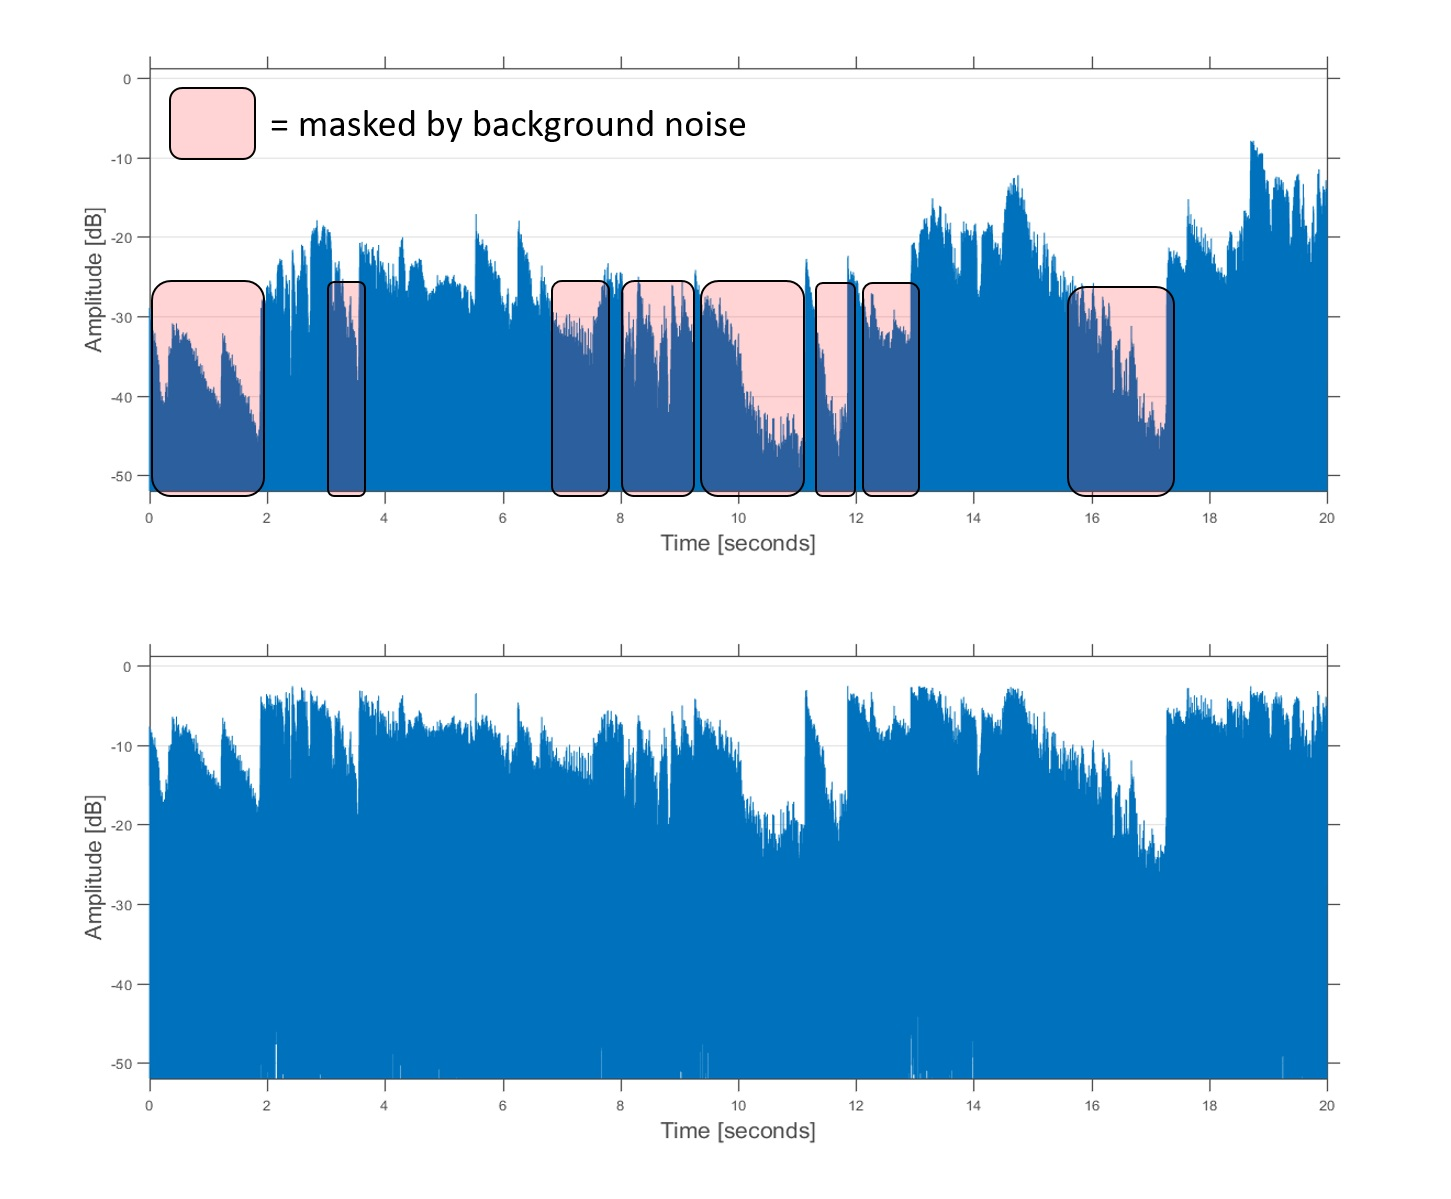 Figure 3: The same audio signal as in the previous figure, before (upper plot) and after (lower plot) dynamic range compression.